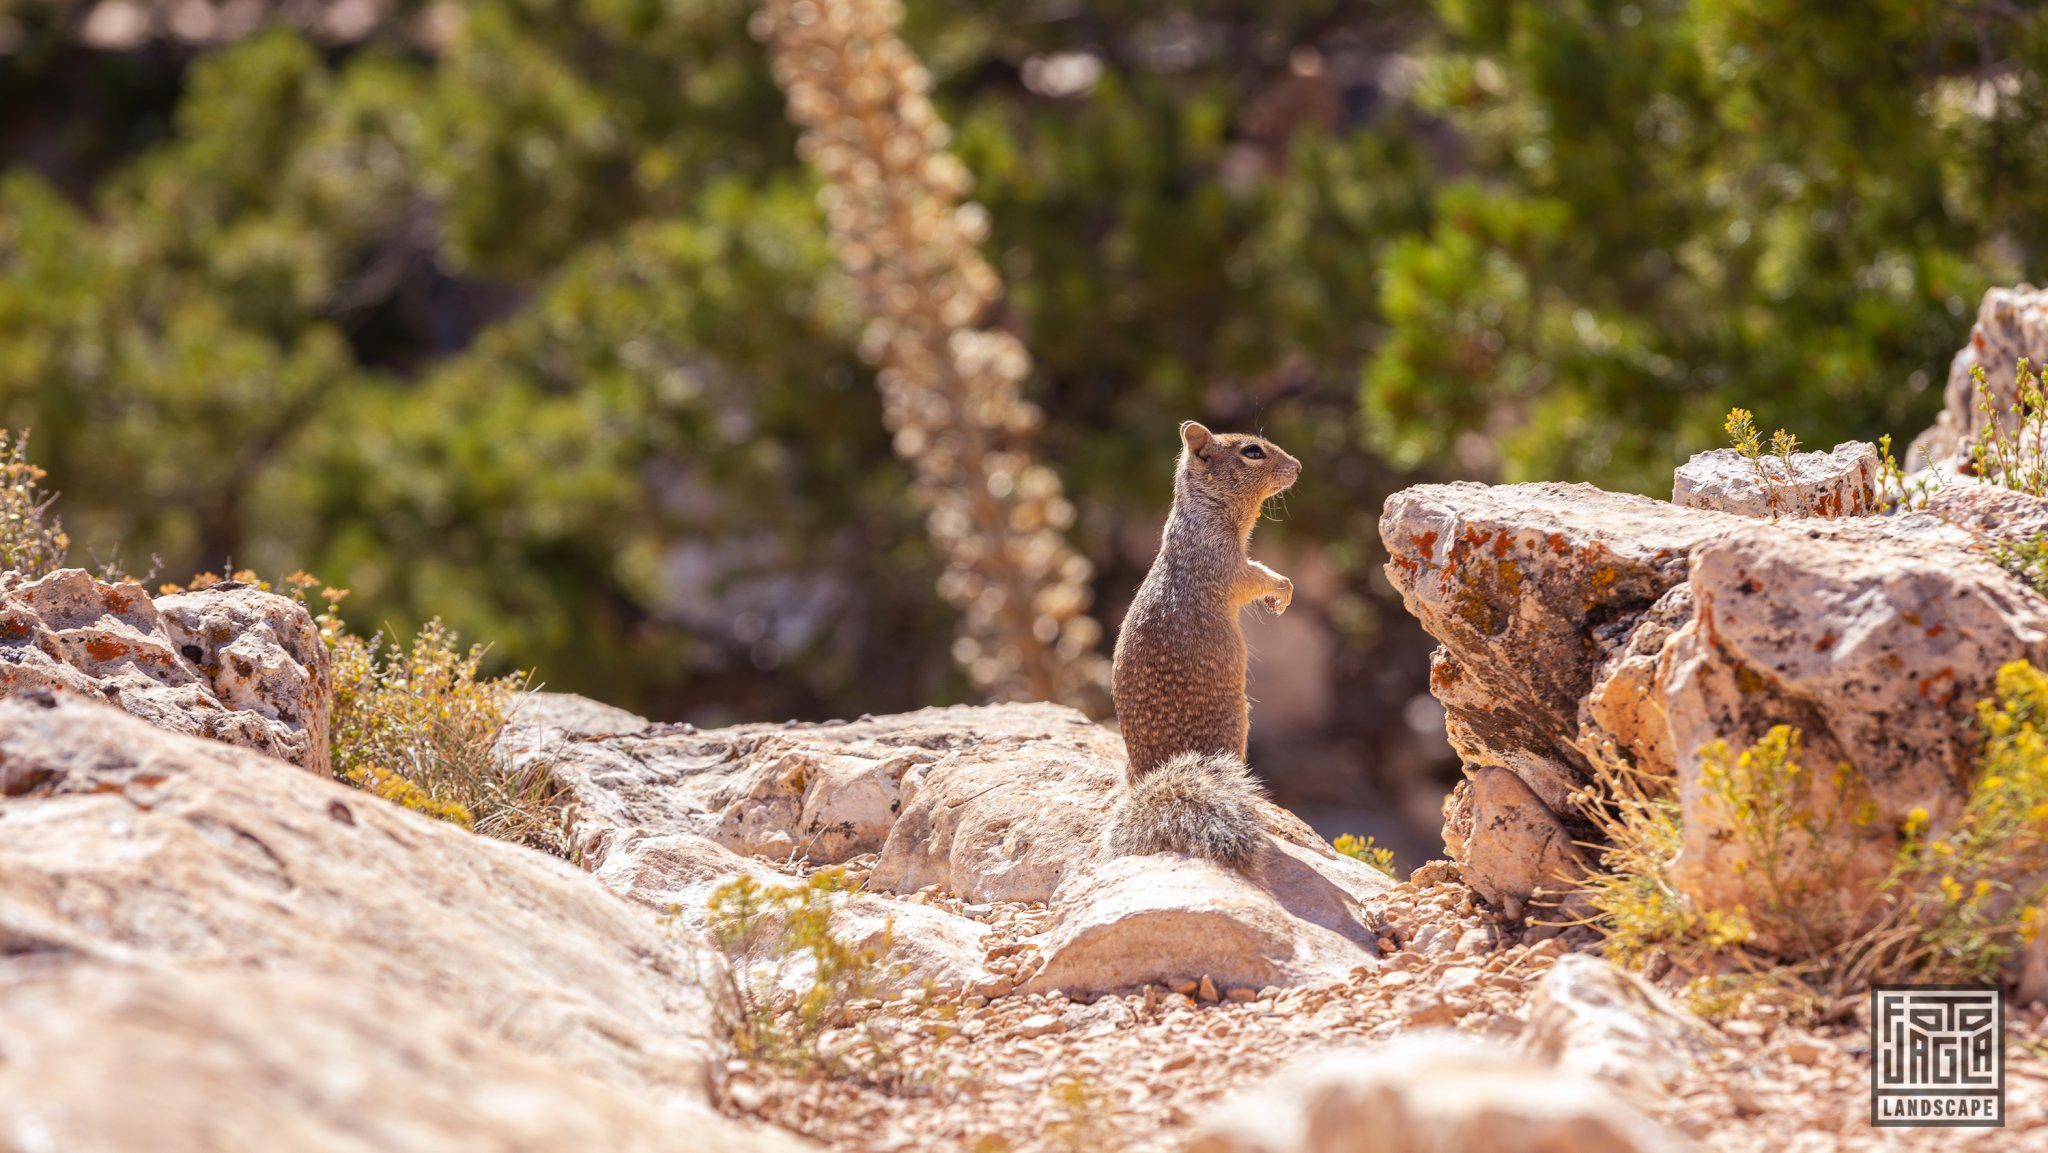 Cute squirrel at the Mohave Point in Grand Canyon Village Arizona, USA 2019